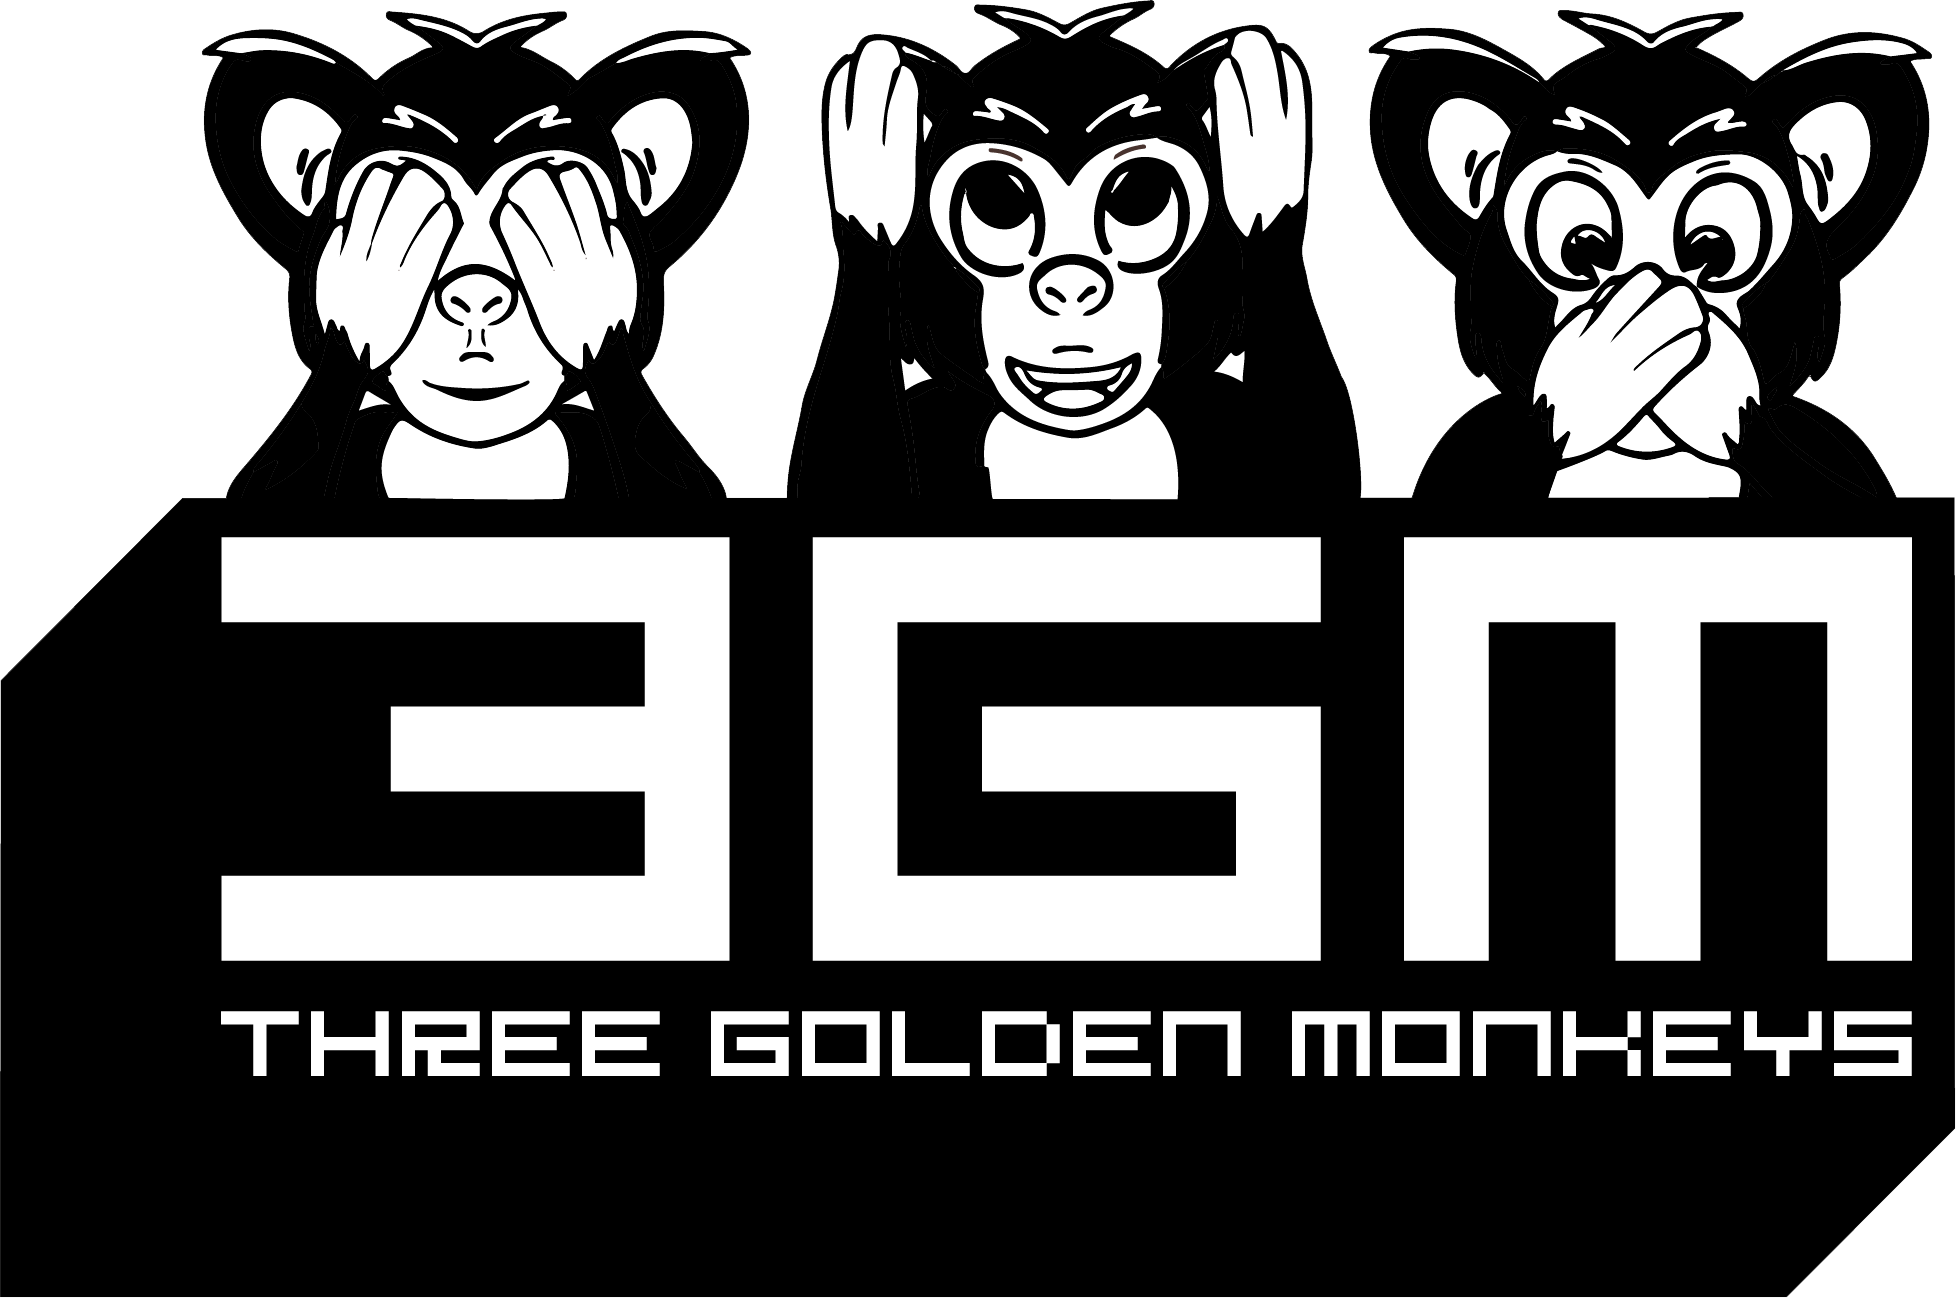 juegos robots de lucha Archives - Three Golden Monkeys Lab